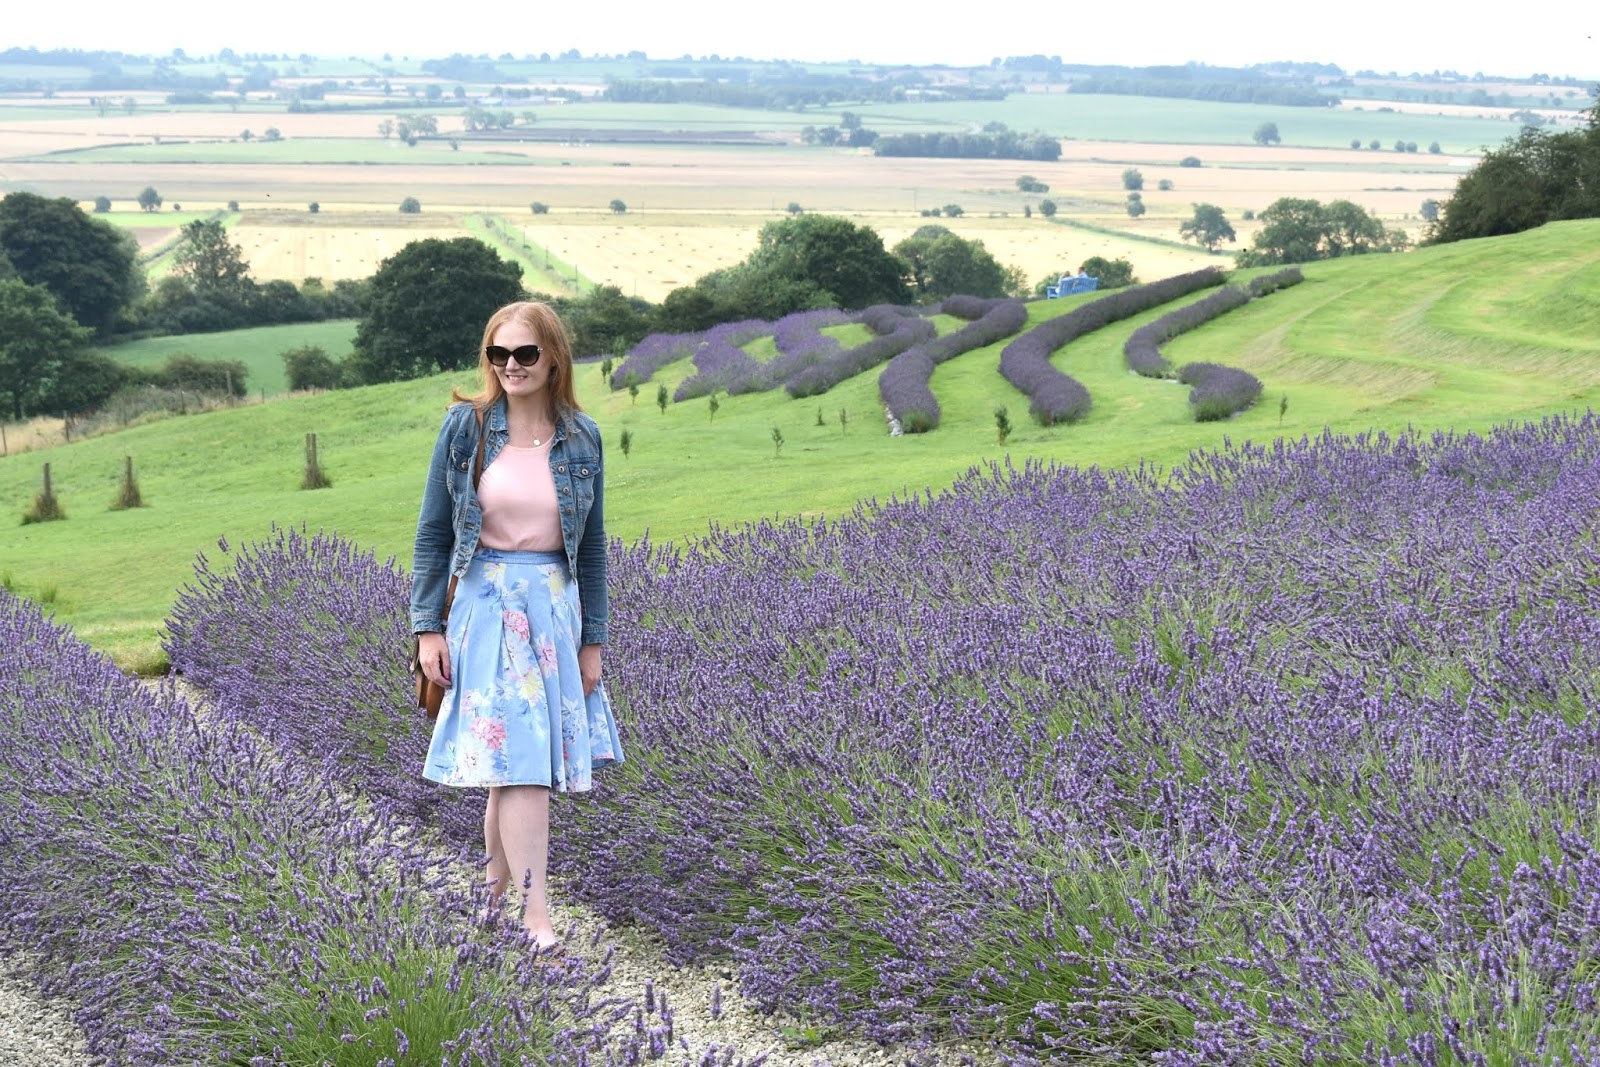 North of England - A Trip to Yorkshire Lavender